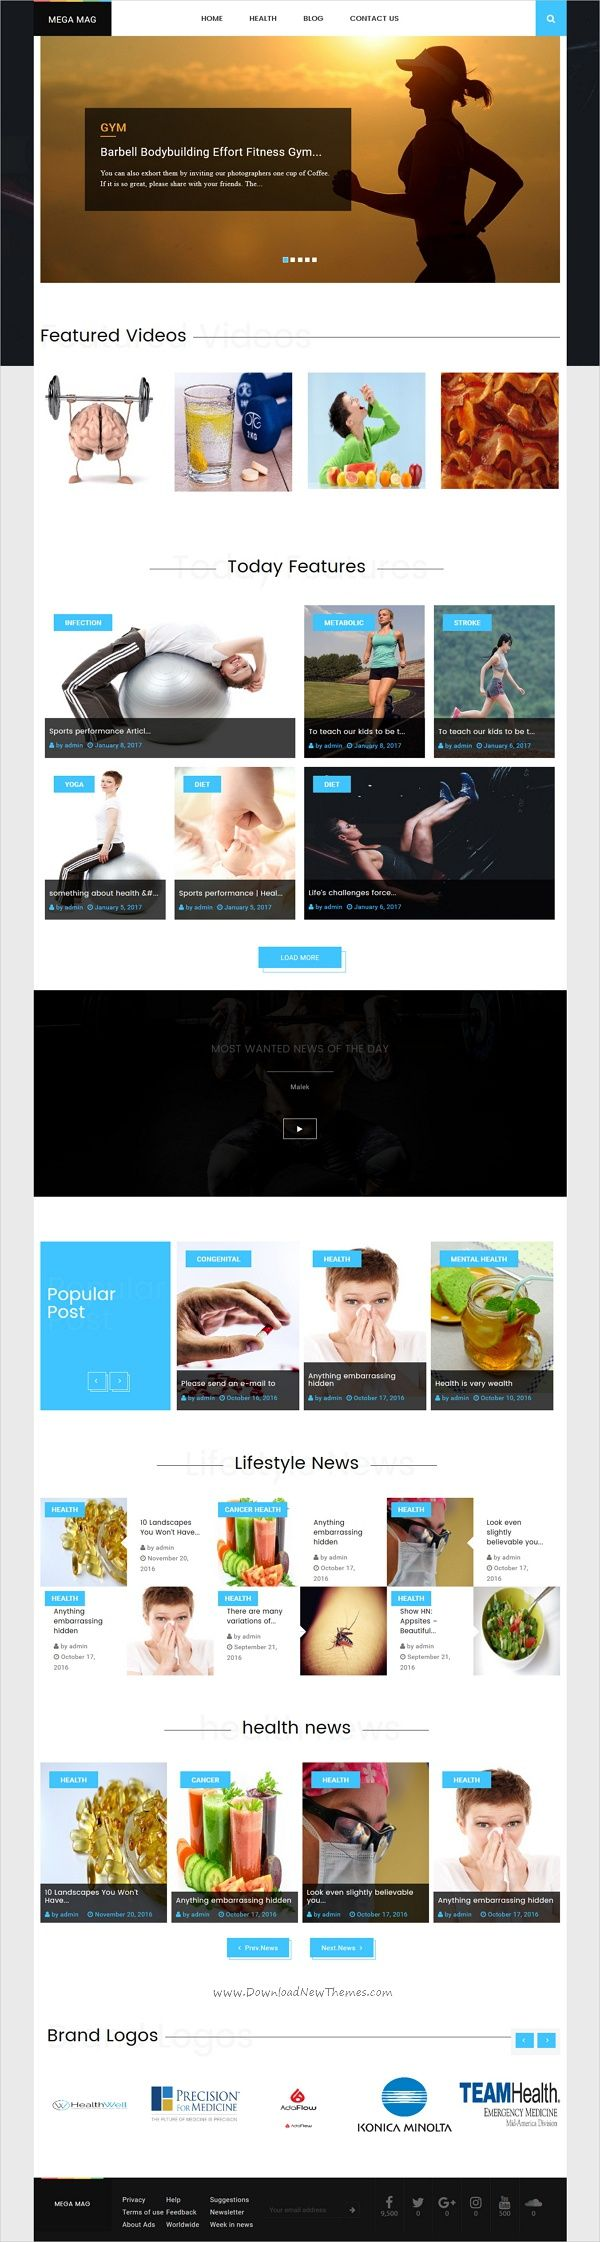 MegaMag is beautifully design #responsive viral content #WordPress theme for News, #Magazine, blog, publishing and review websites with live cricket score and weather widget download now➩ https://themeforest.net/item/megamag-news-newspaper-magazine-blog-viral-content-and-review-wordpress-theme/18734760?ref=Datasata